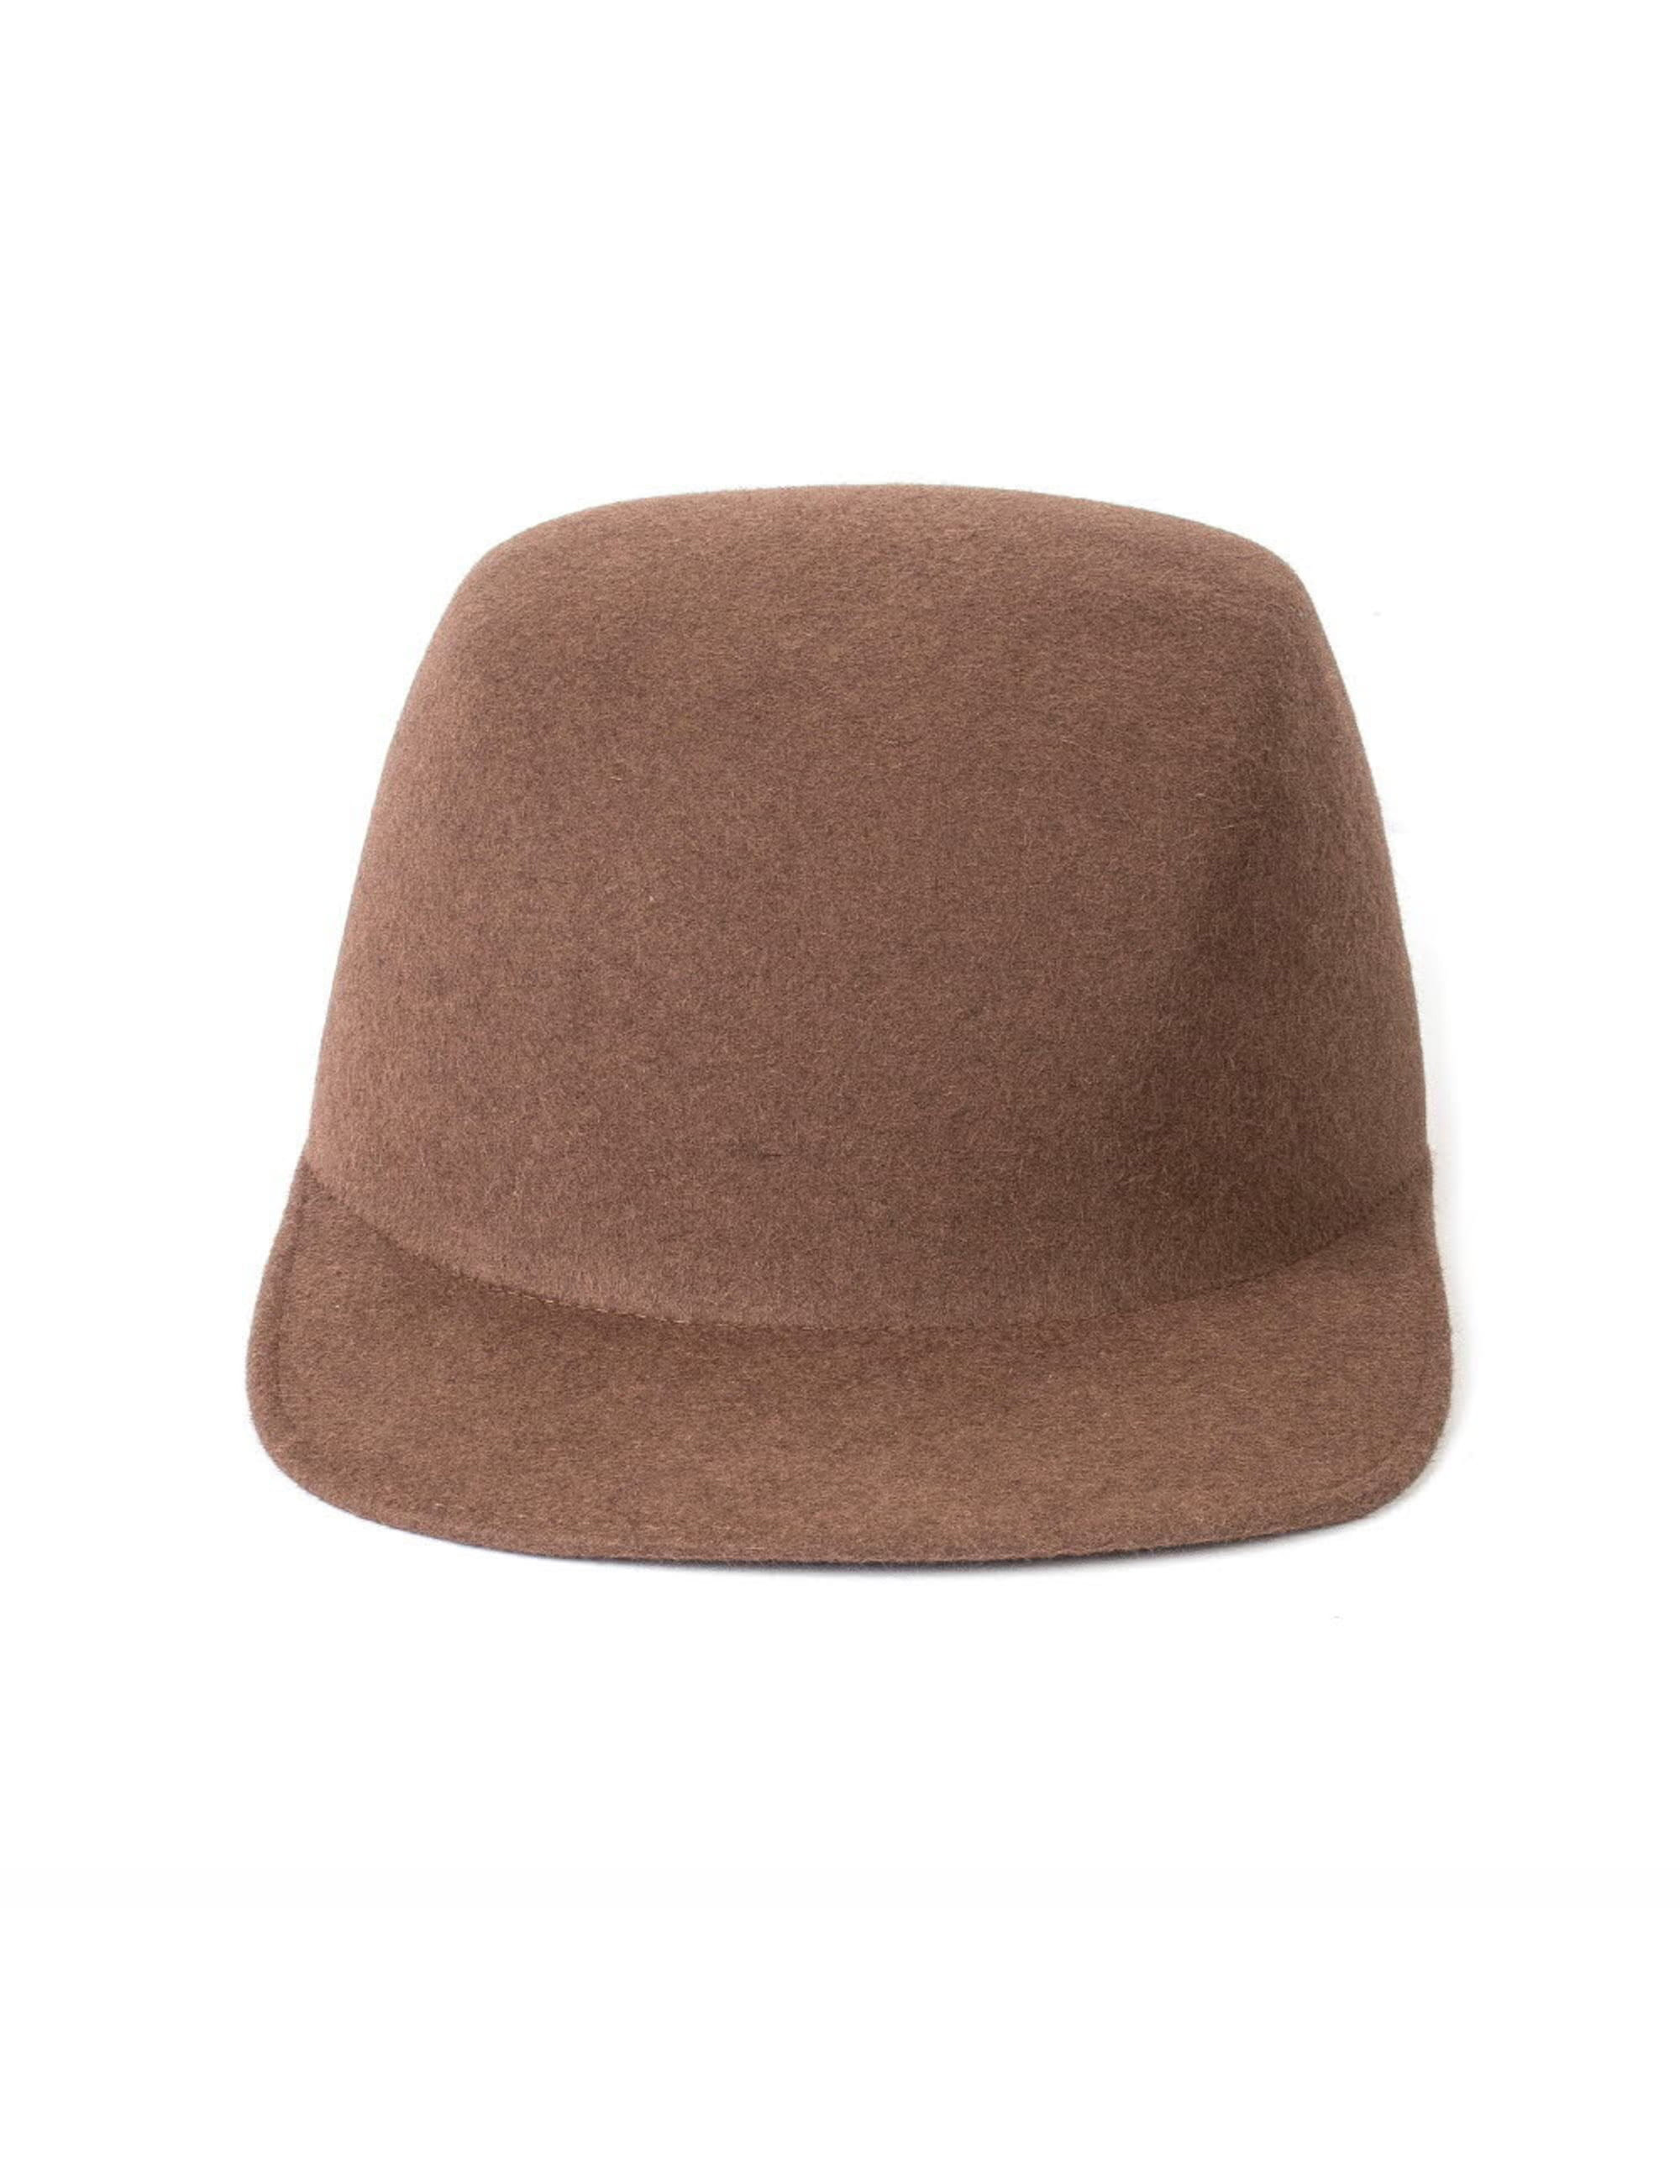 SHARED LAPIN CAMPER CAP_LIGHT BROWN